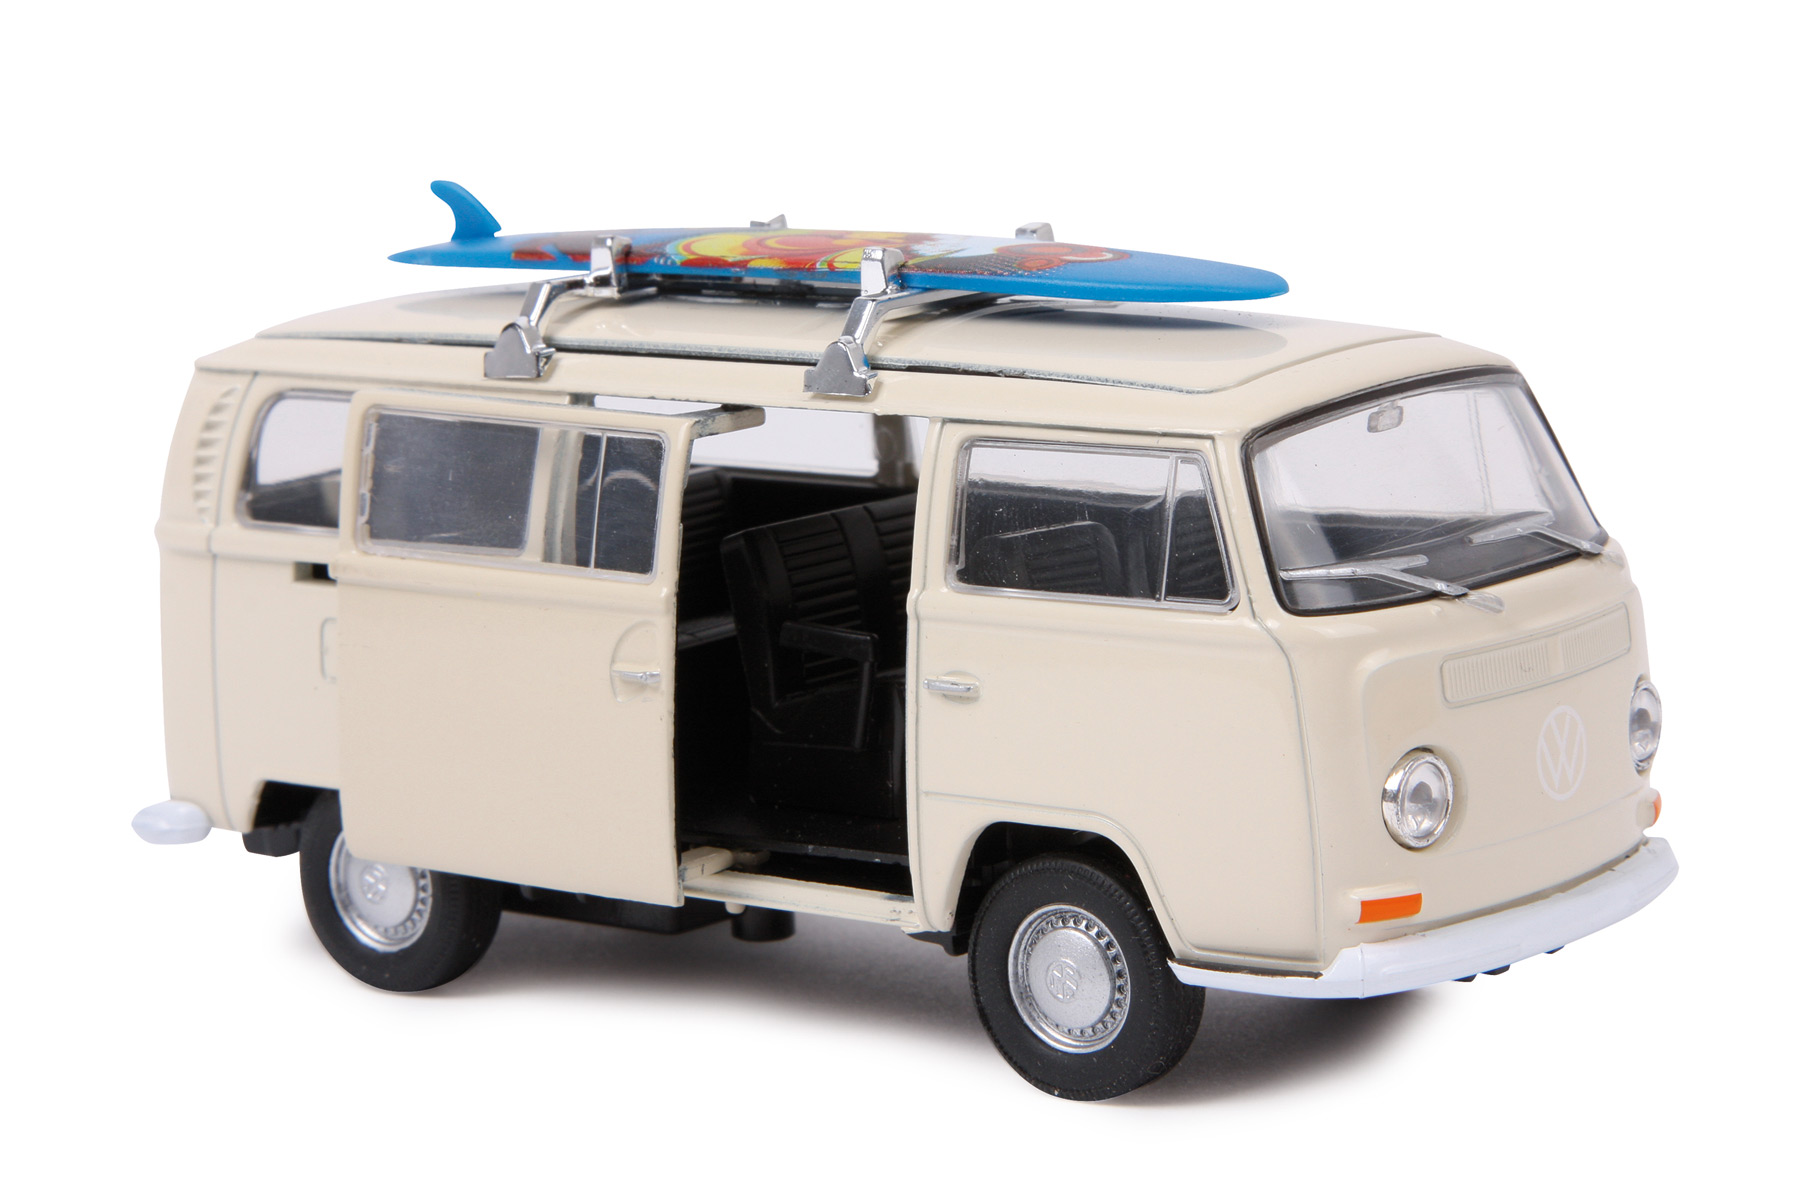 modellauto vw bus t2 surfbrett modellautos. Black Bedroom Furniture Sets. Home Design Ideas